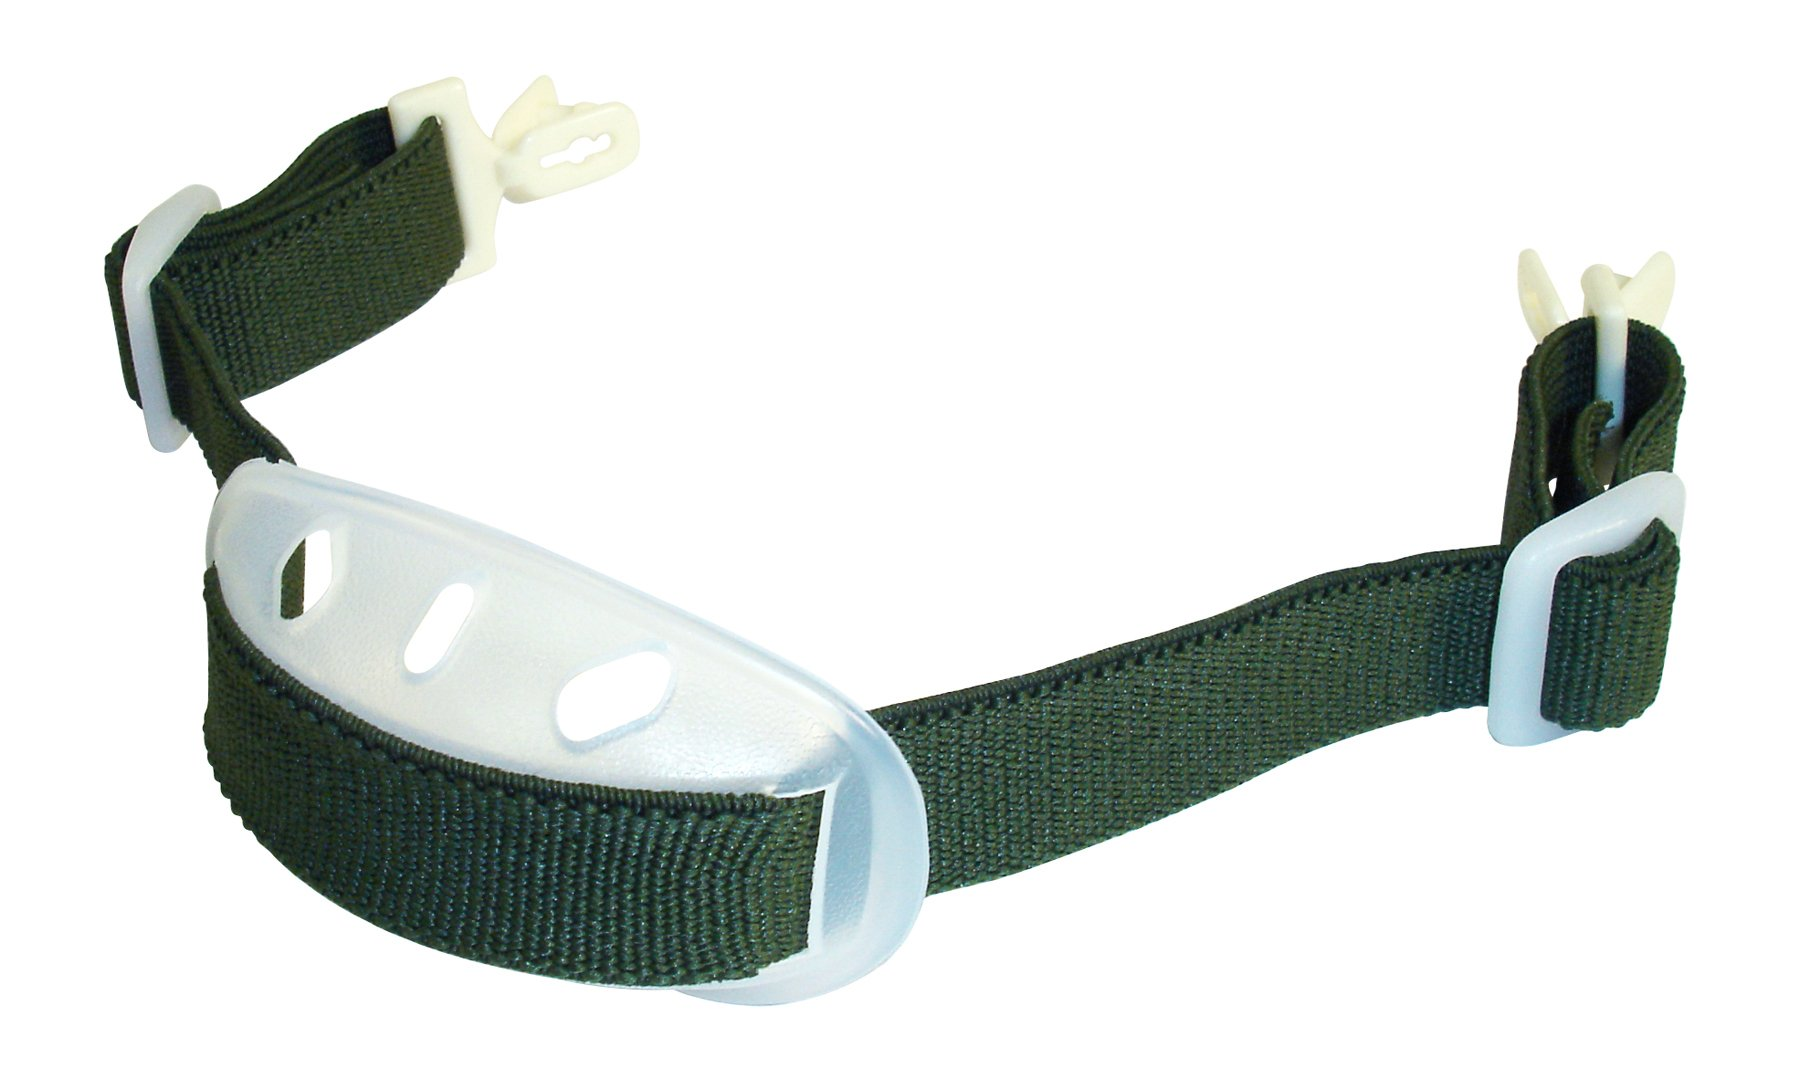 3M Elastic Chin Strap X24, 46551-00000 by 3M Personal Protective Equipment